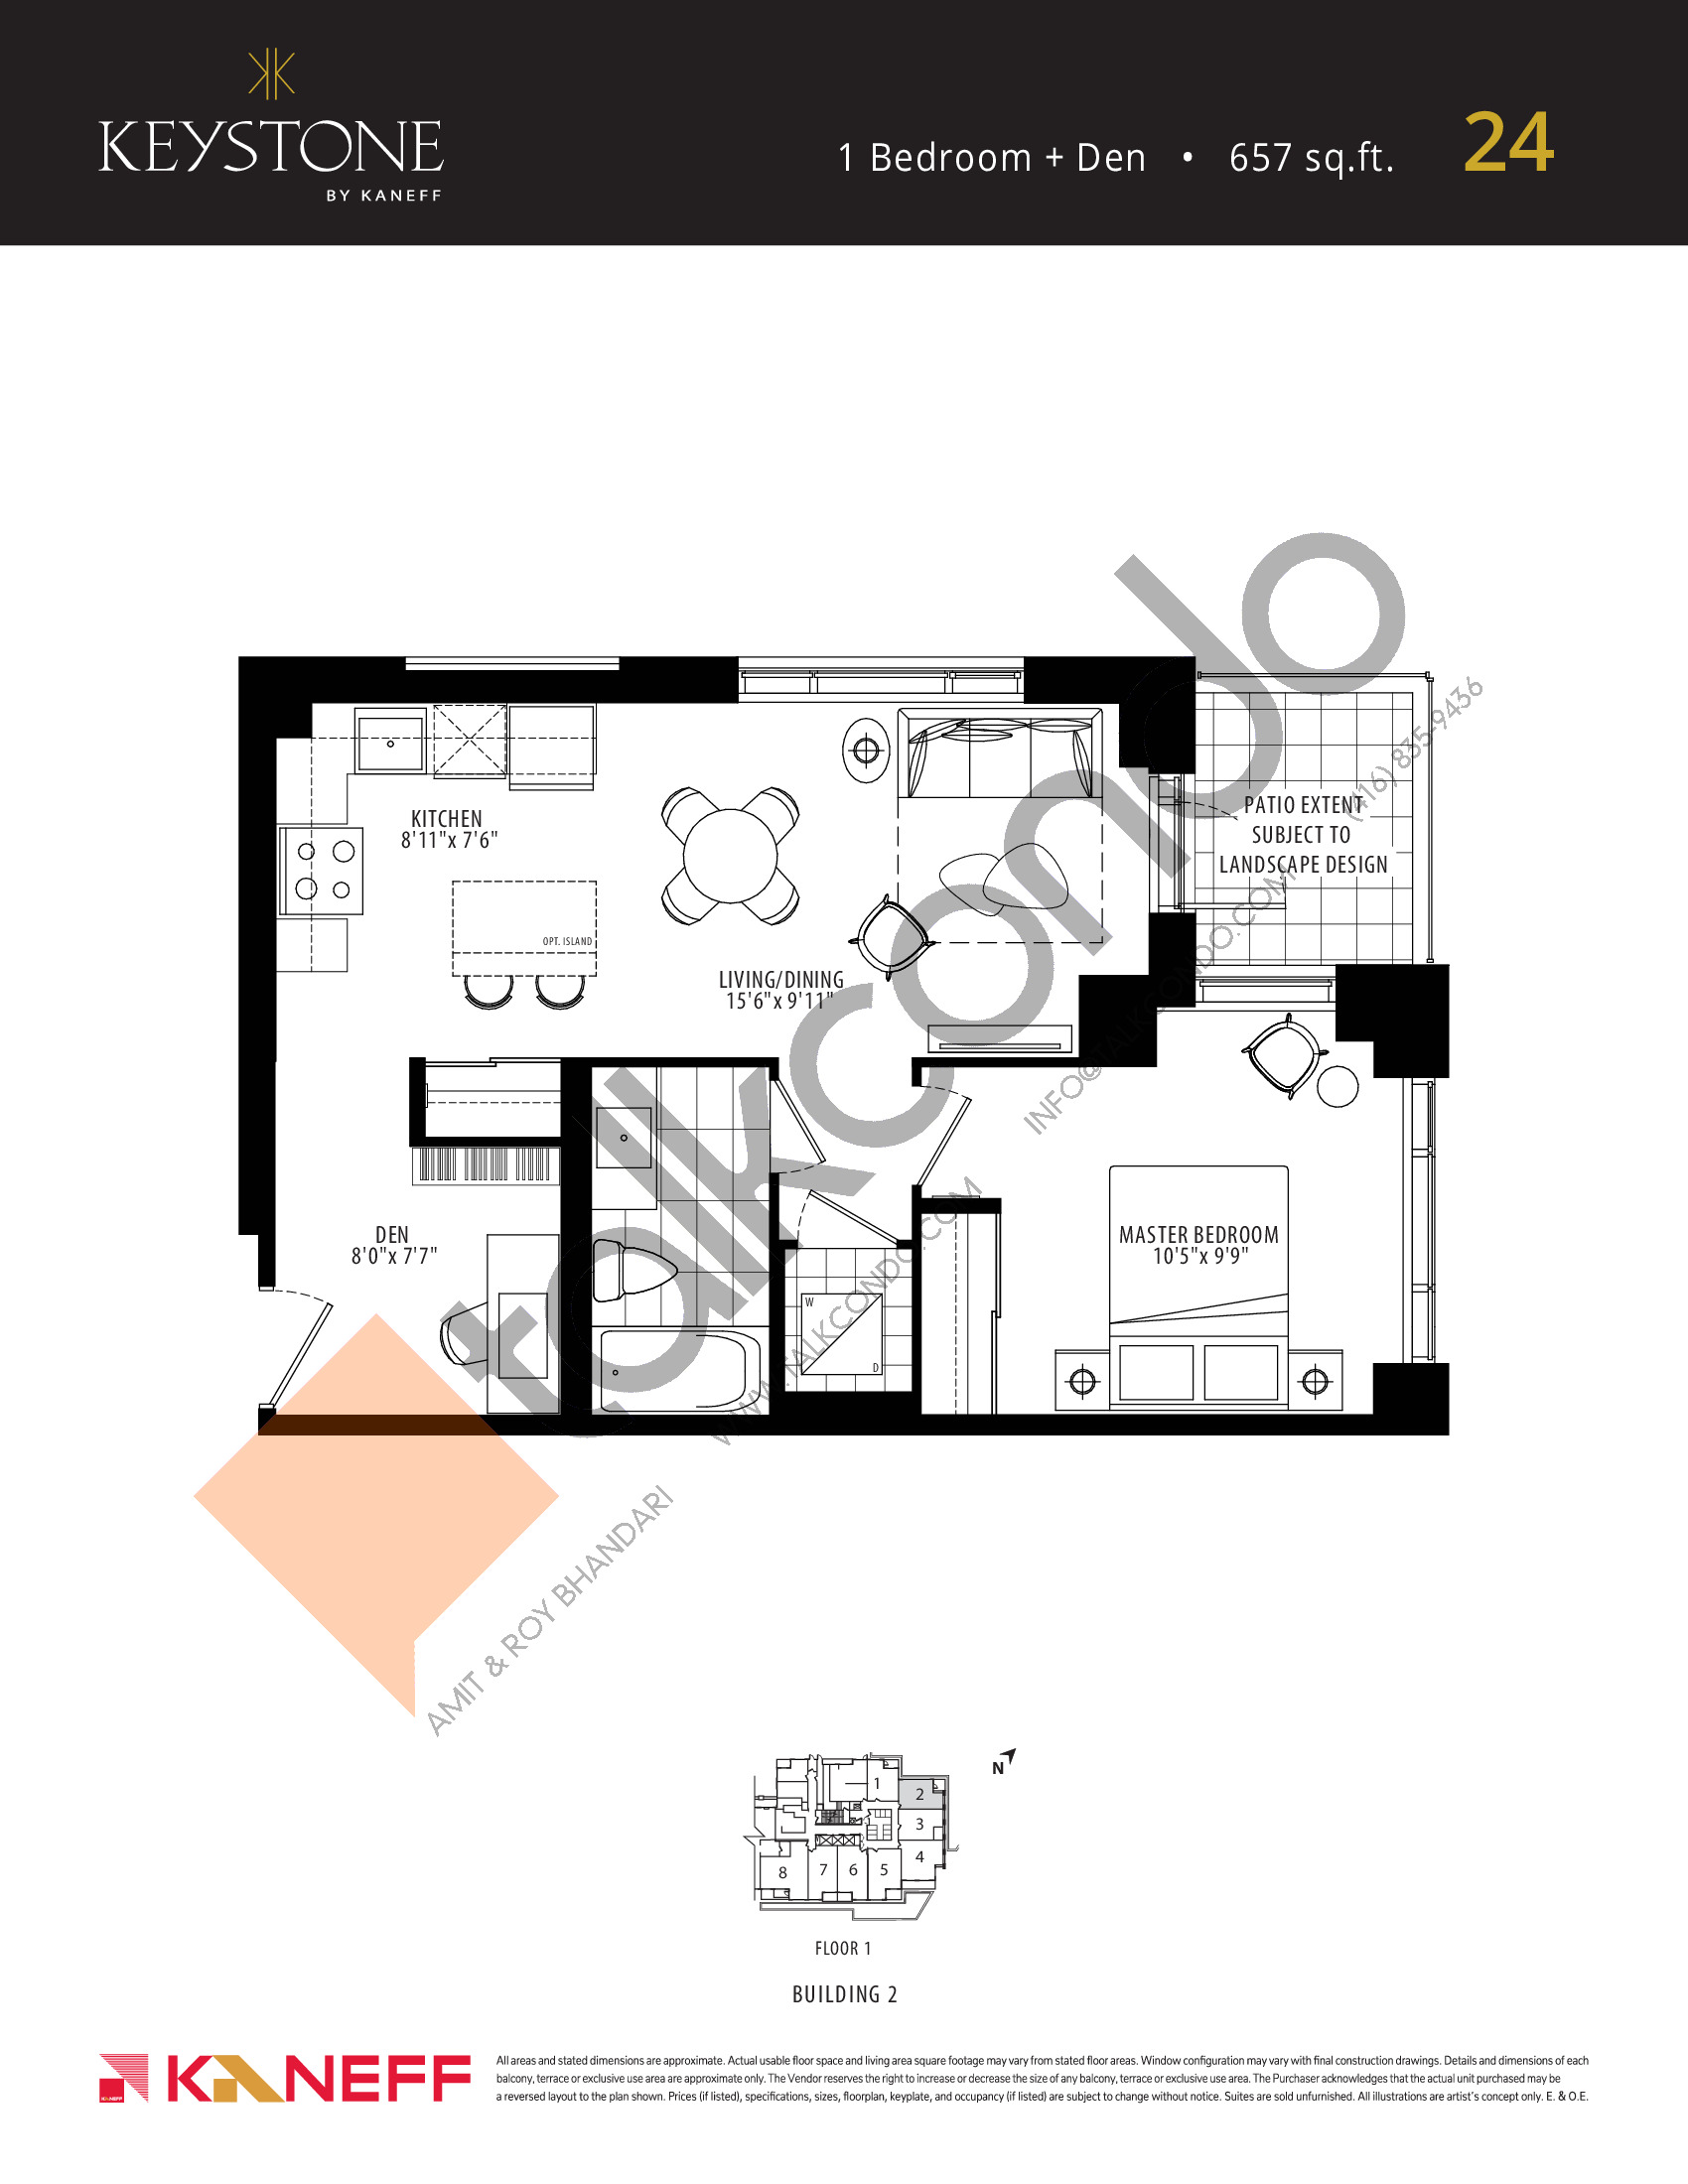 24 Floor Plan at Keystone Condos Phase 2 - 657 sq.ft